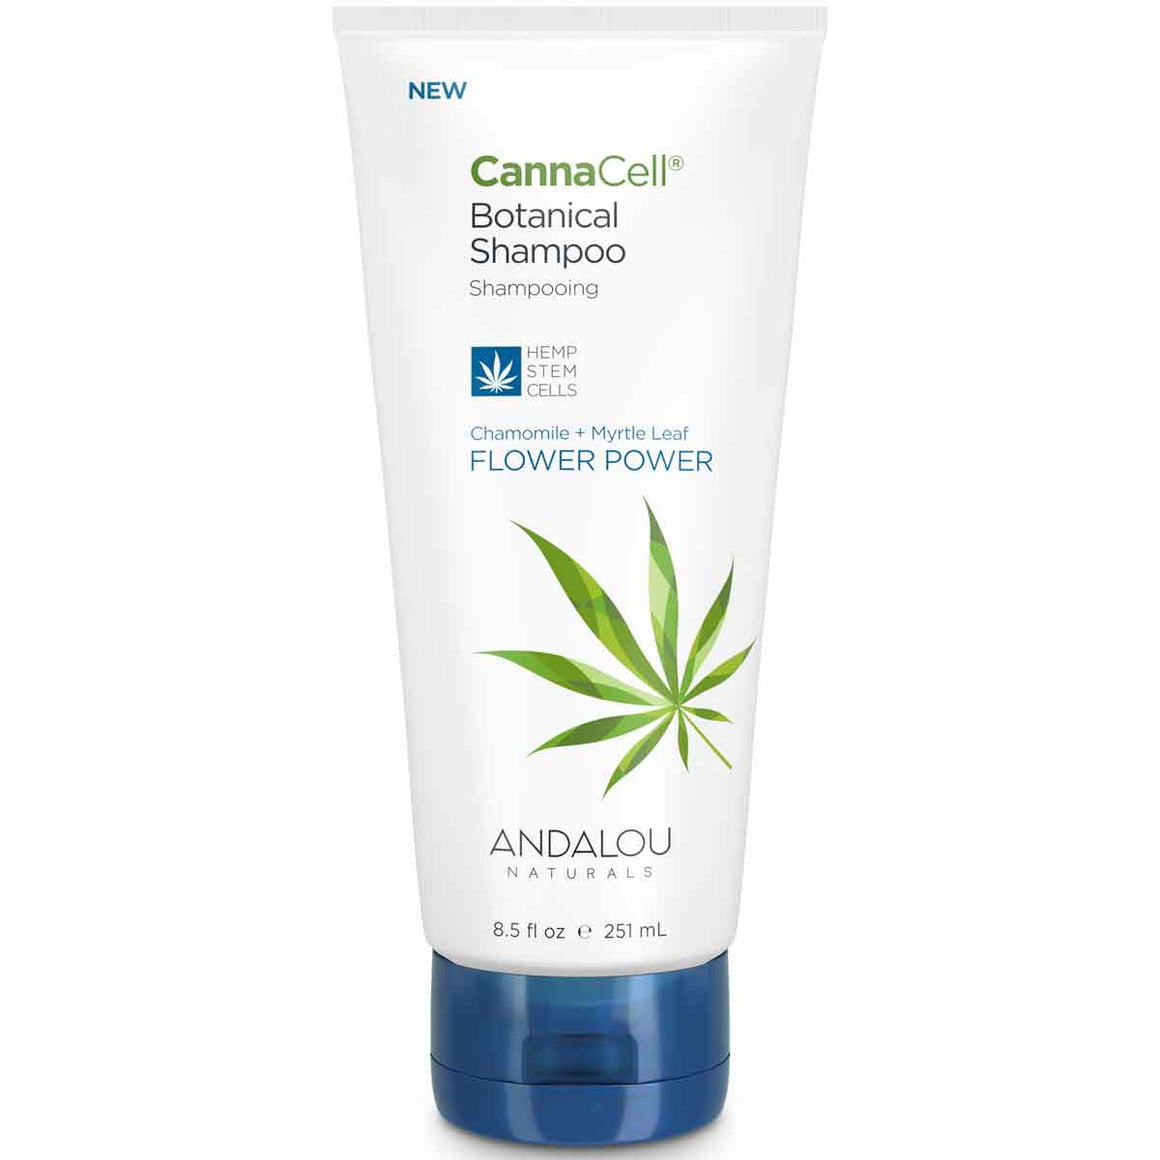 CannaCell® Botanical Shampoo - FLOWER POWER